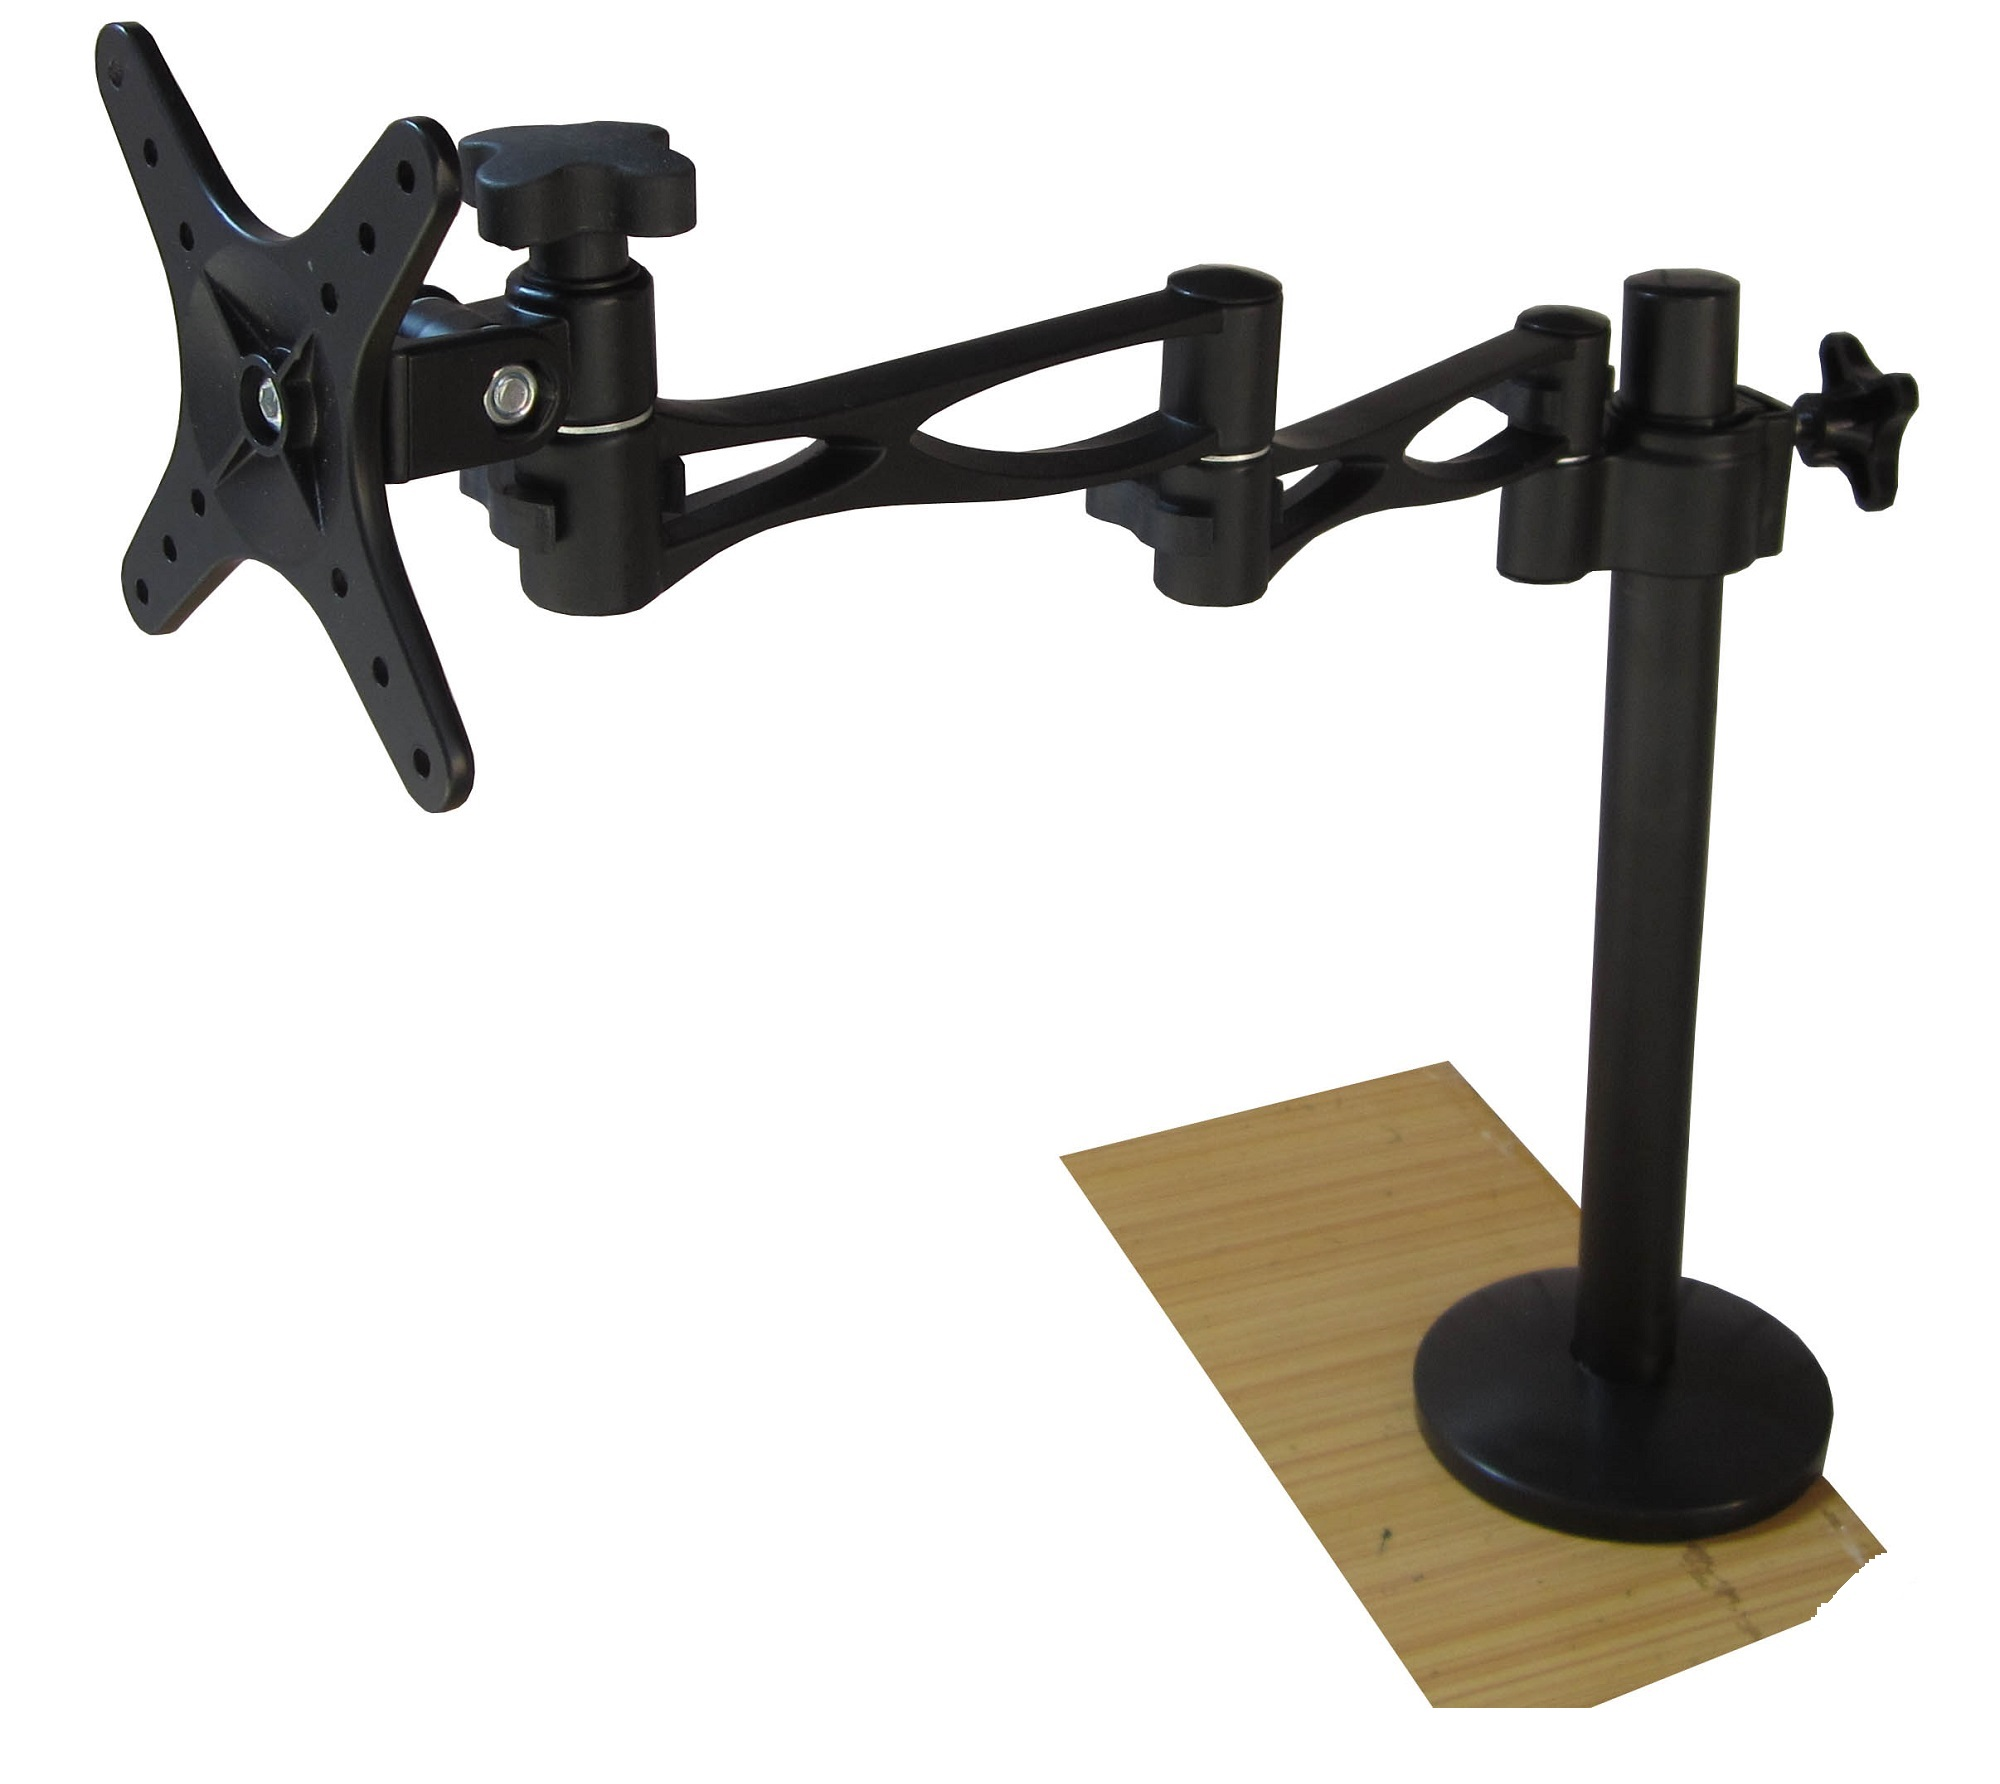 Avr102 Monitor Desk Mount For Display To 27